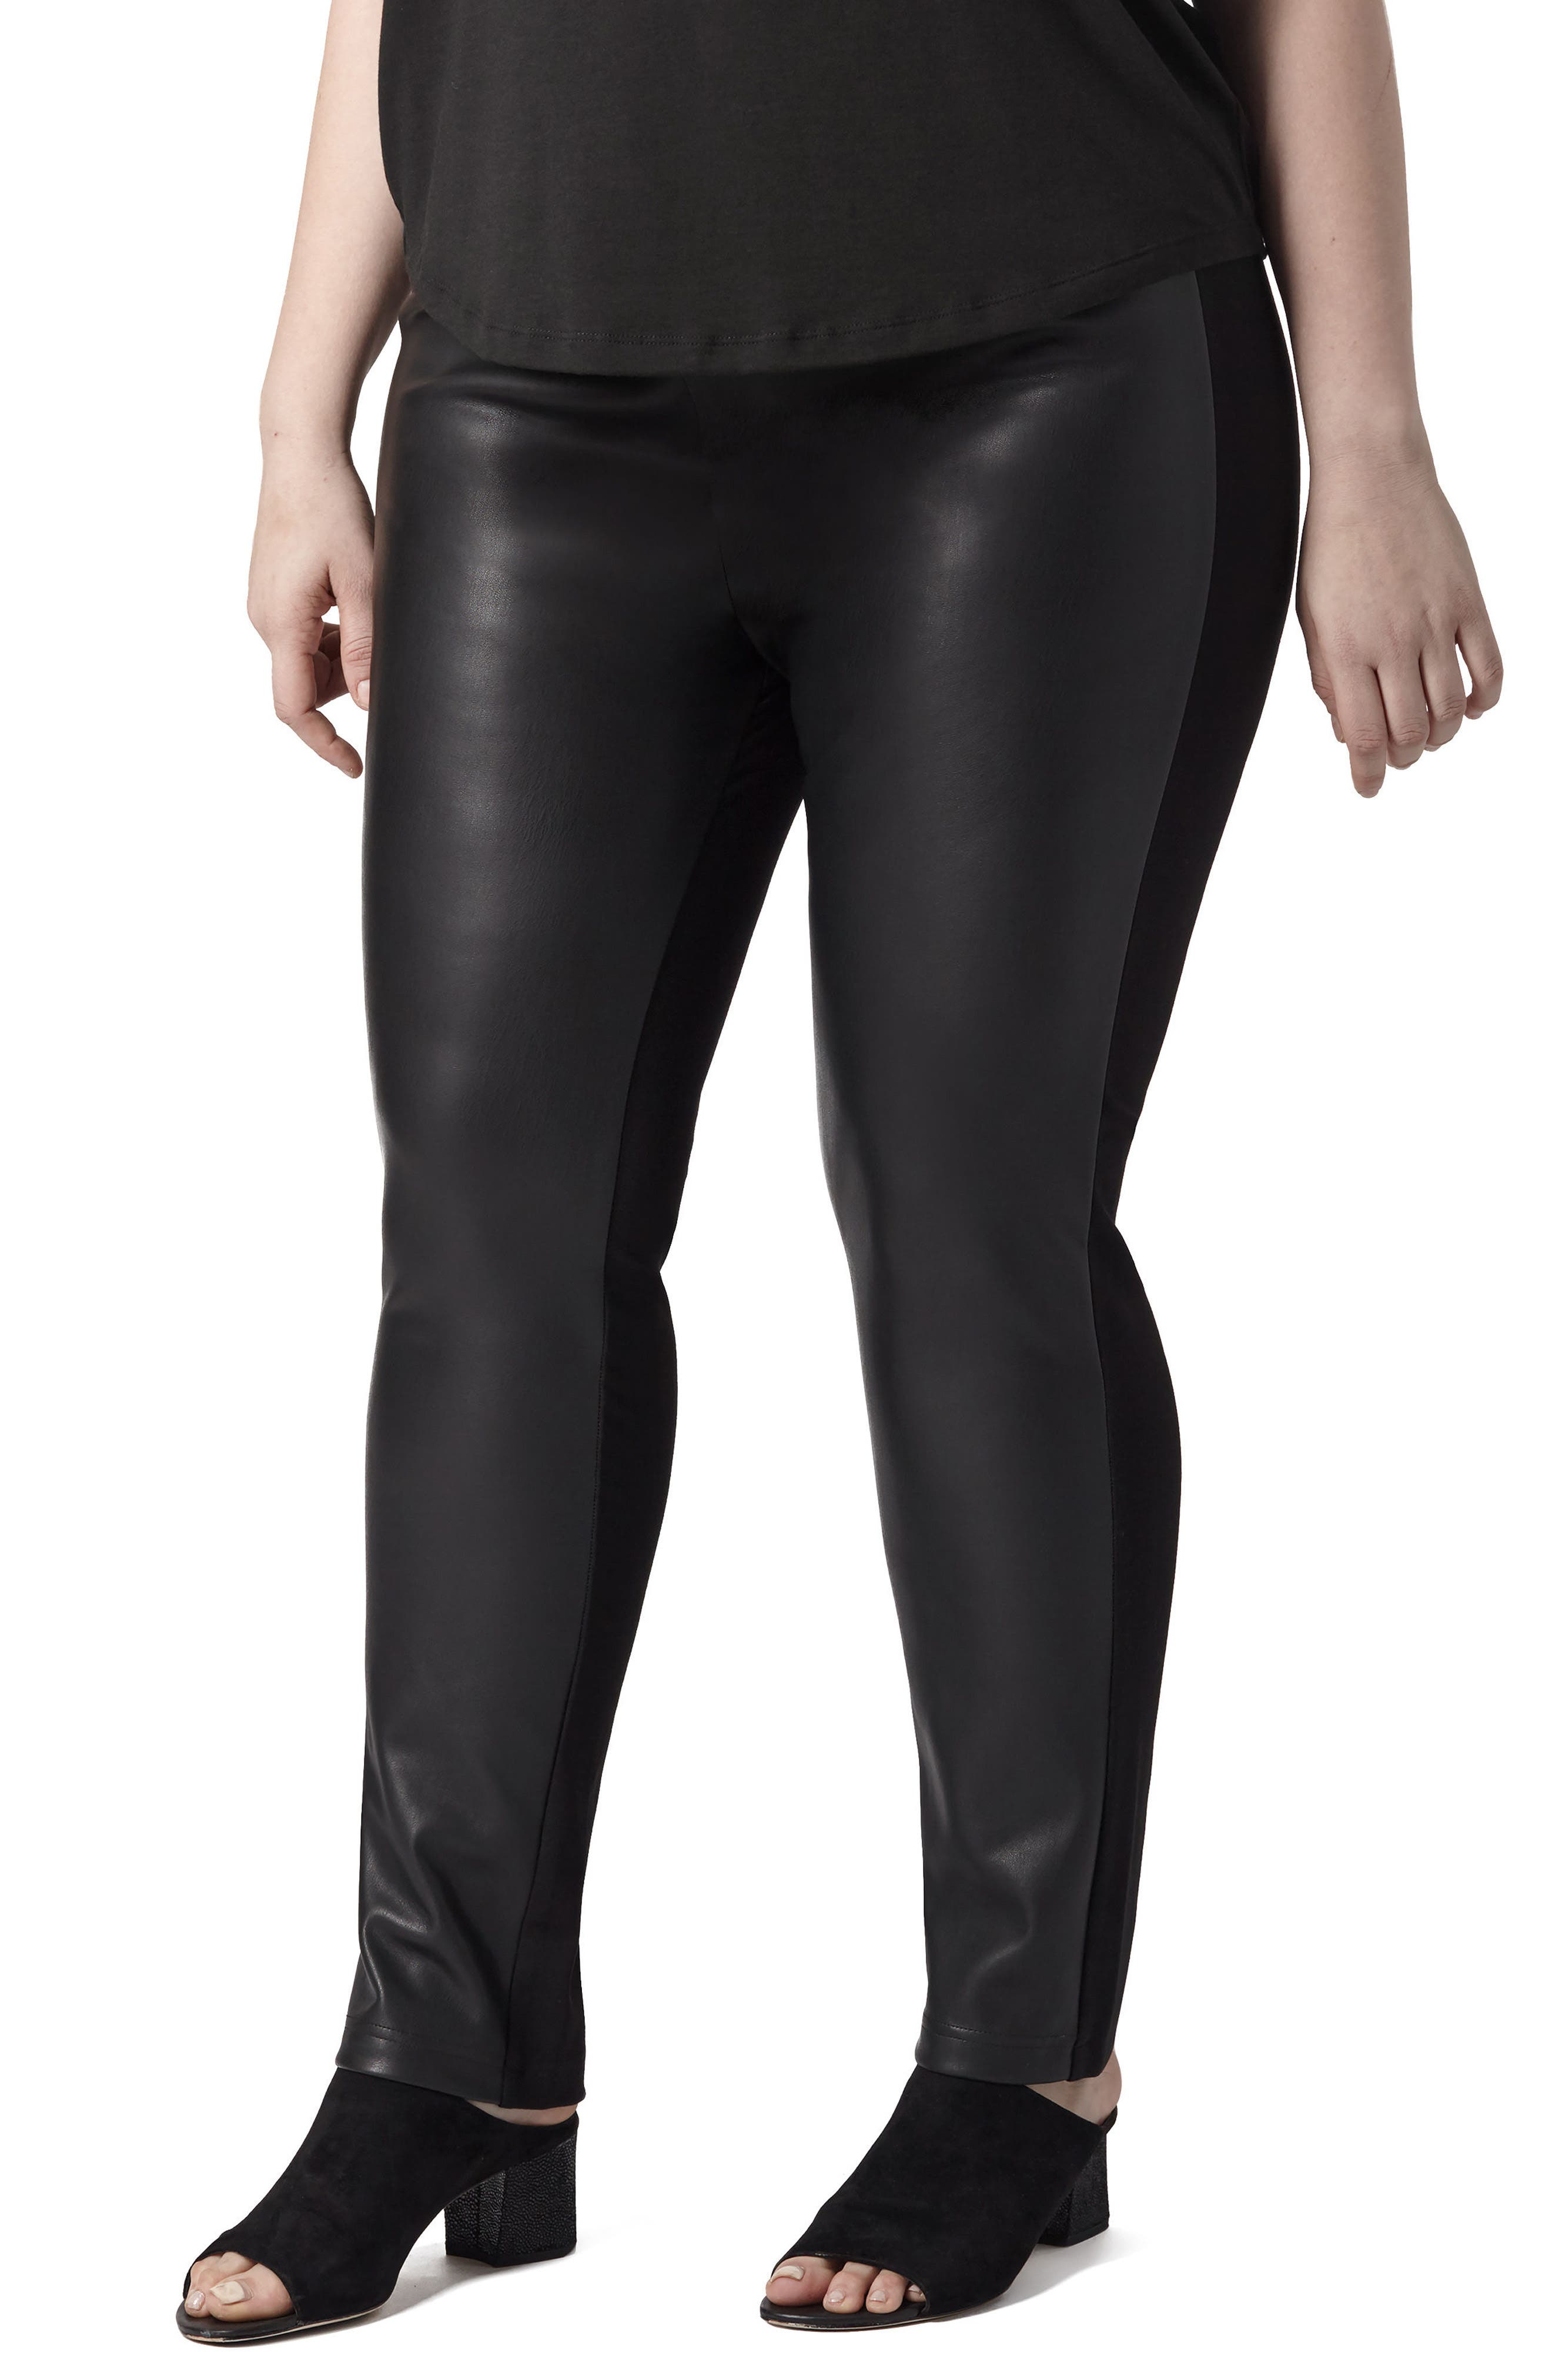 Alternate Image 1 Selected - UNIVERSAL STANDARD Potenza Faux Leather Pants (Plus Size)